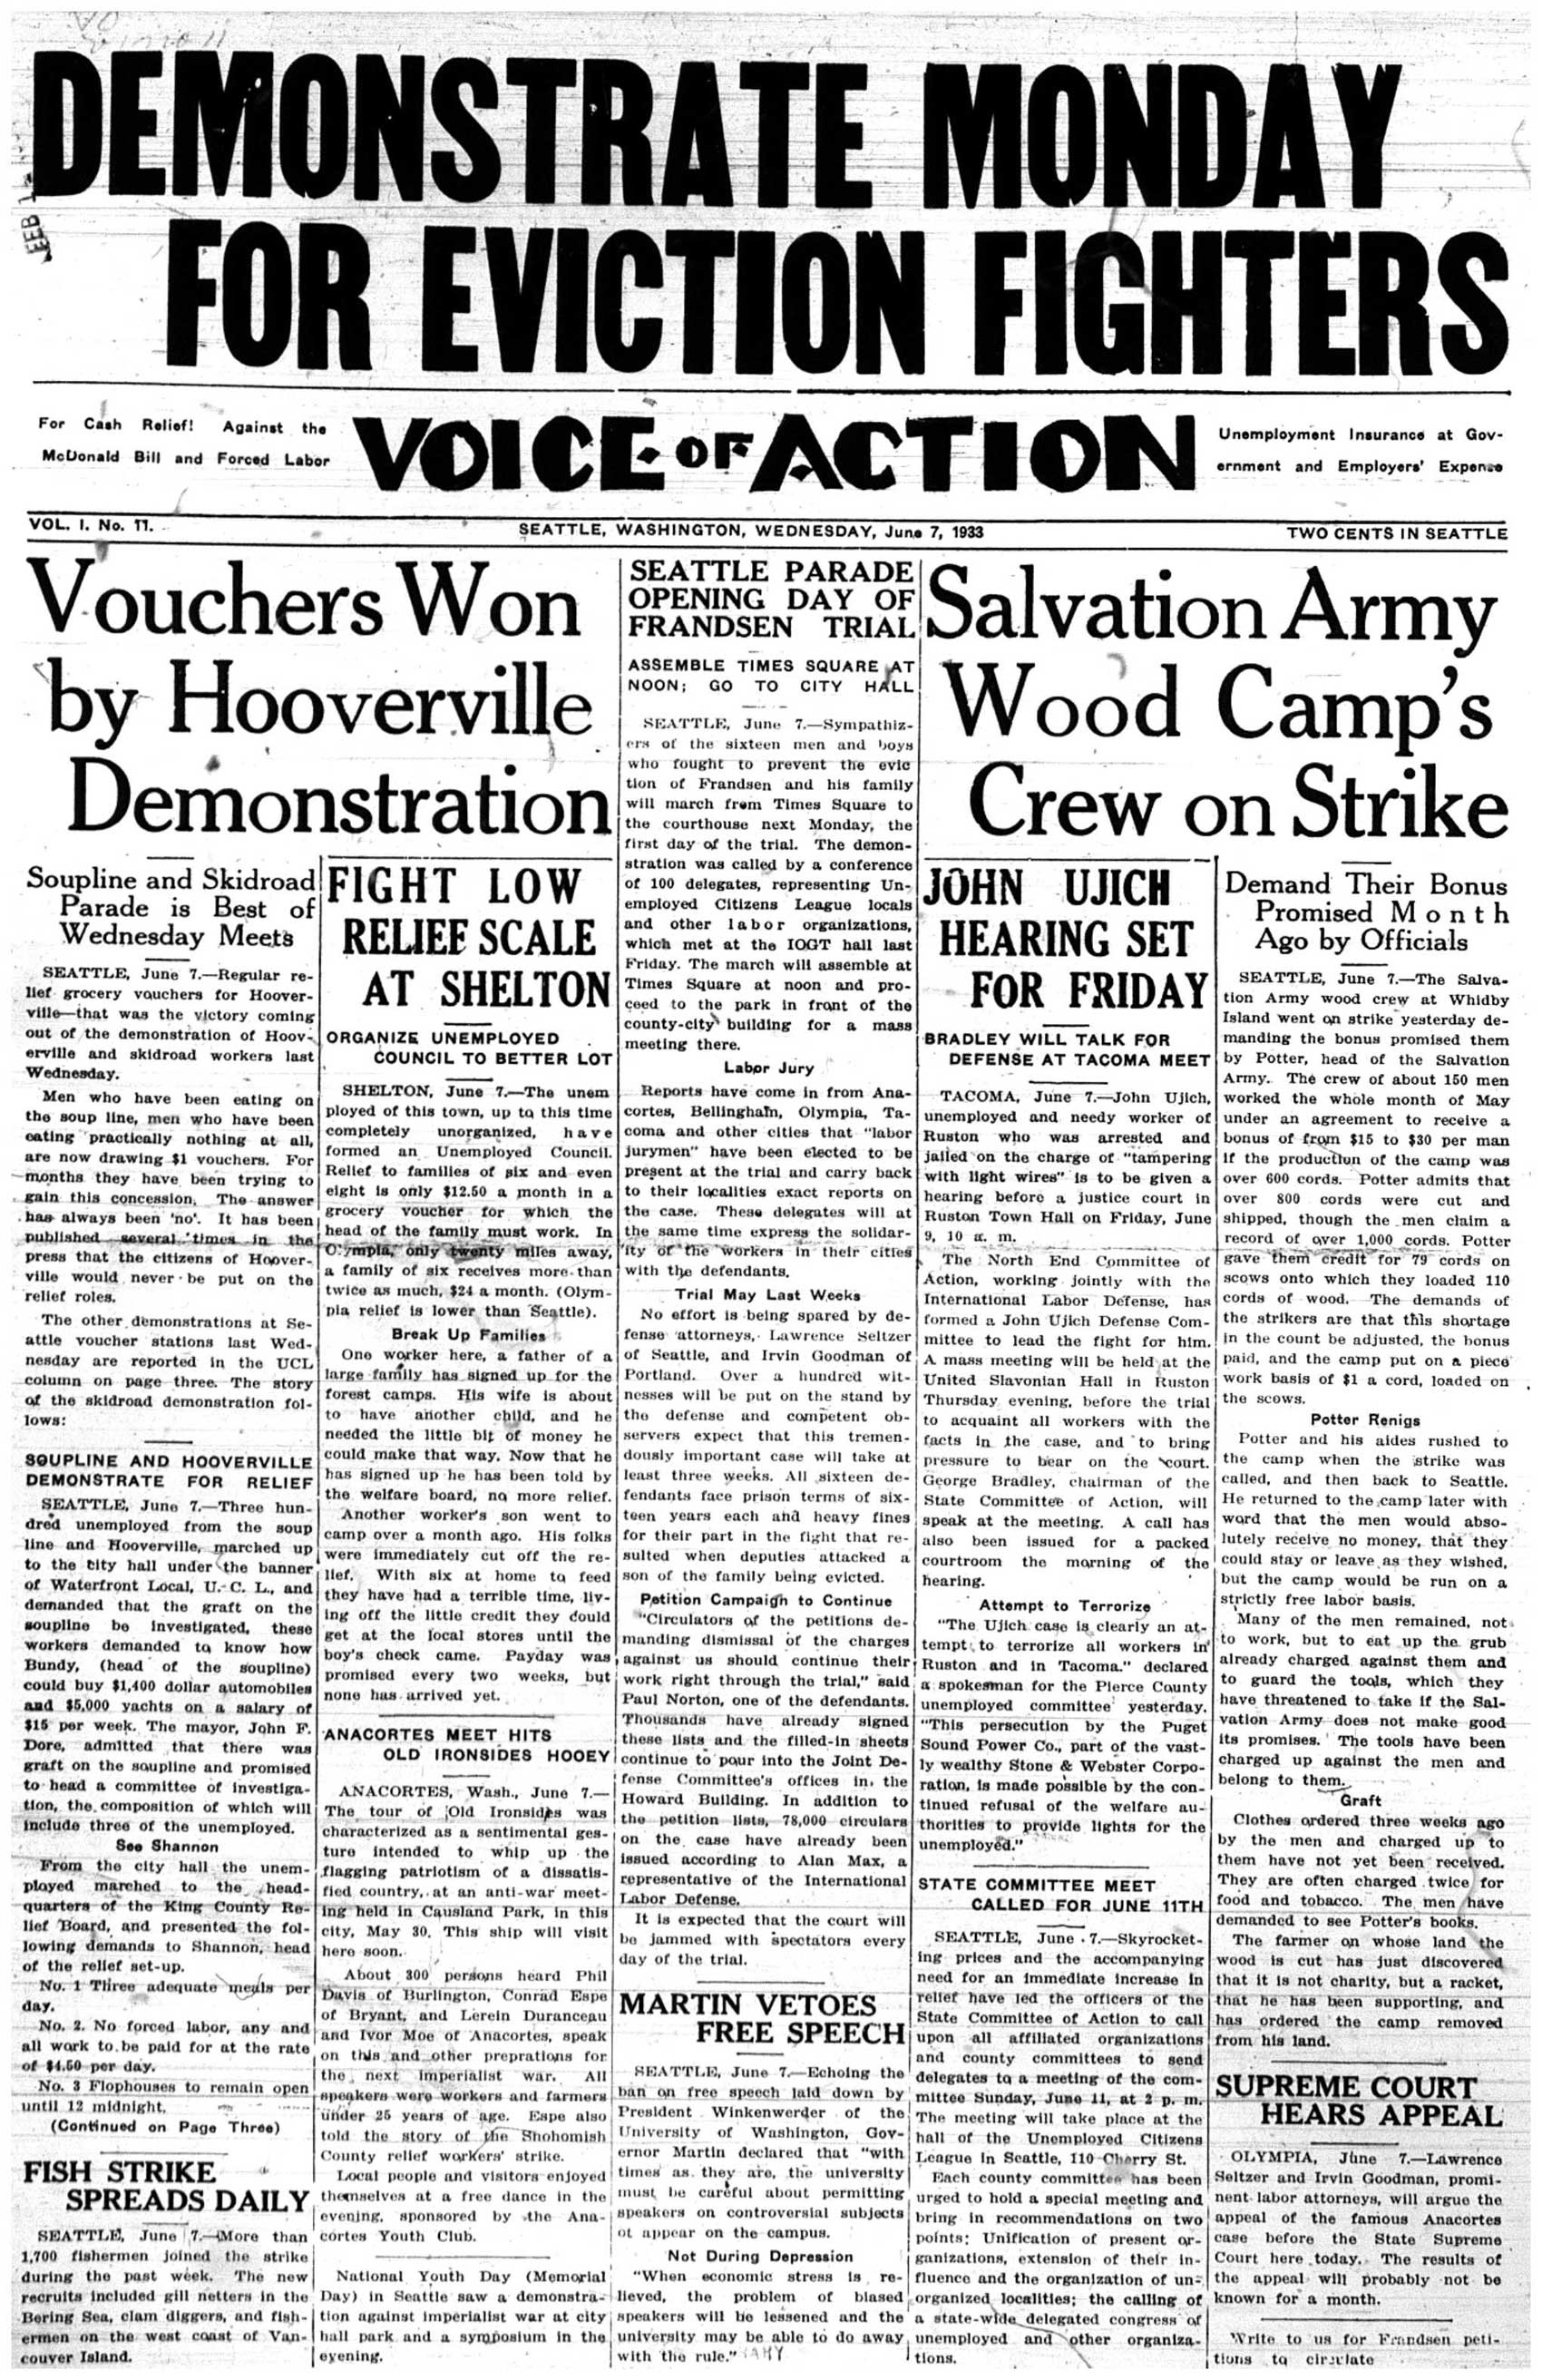 hooverville articles